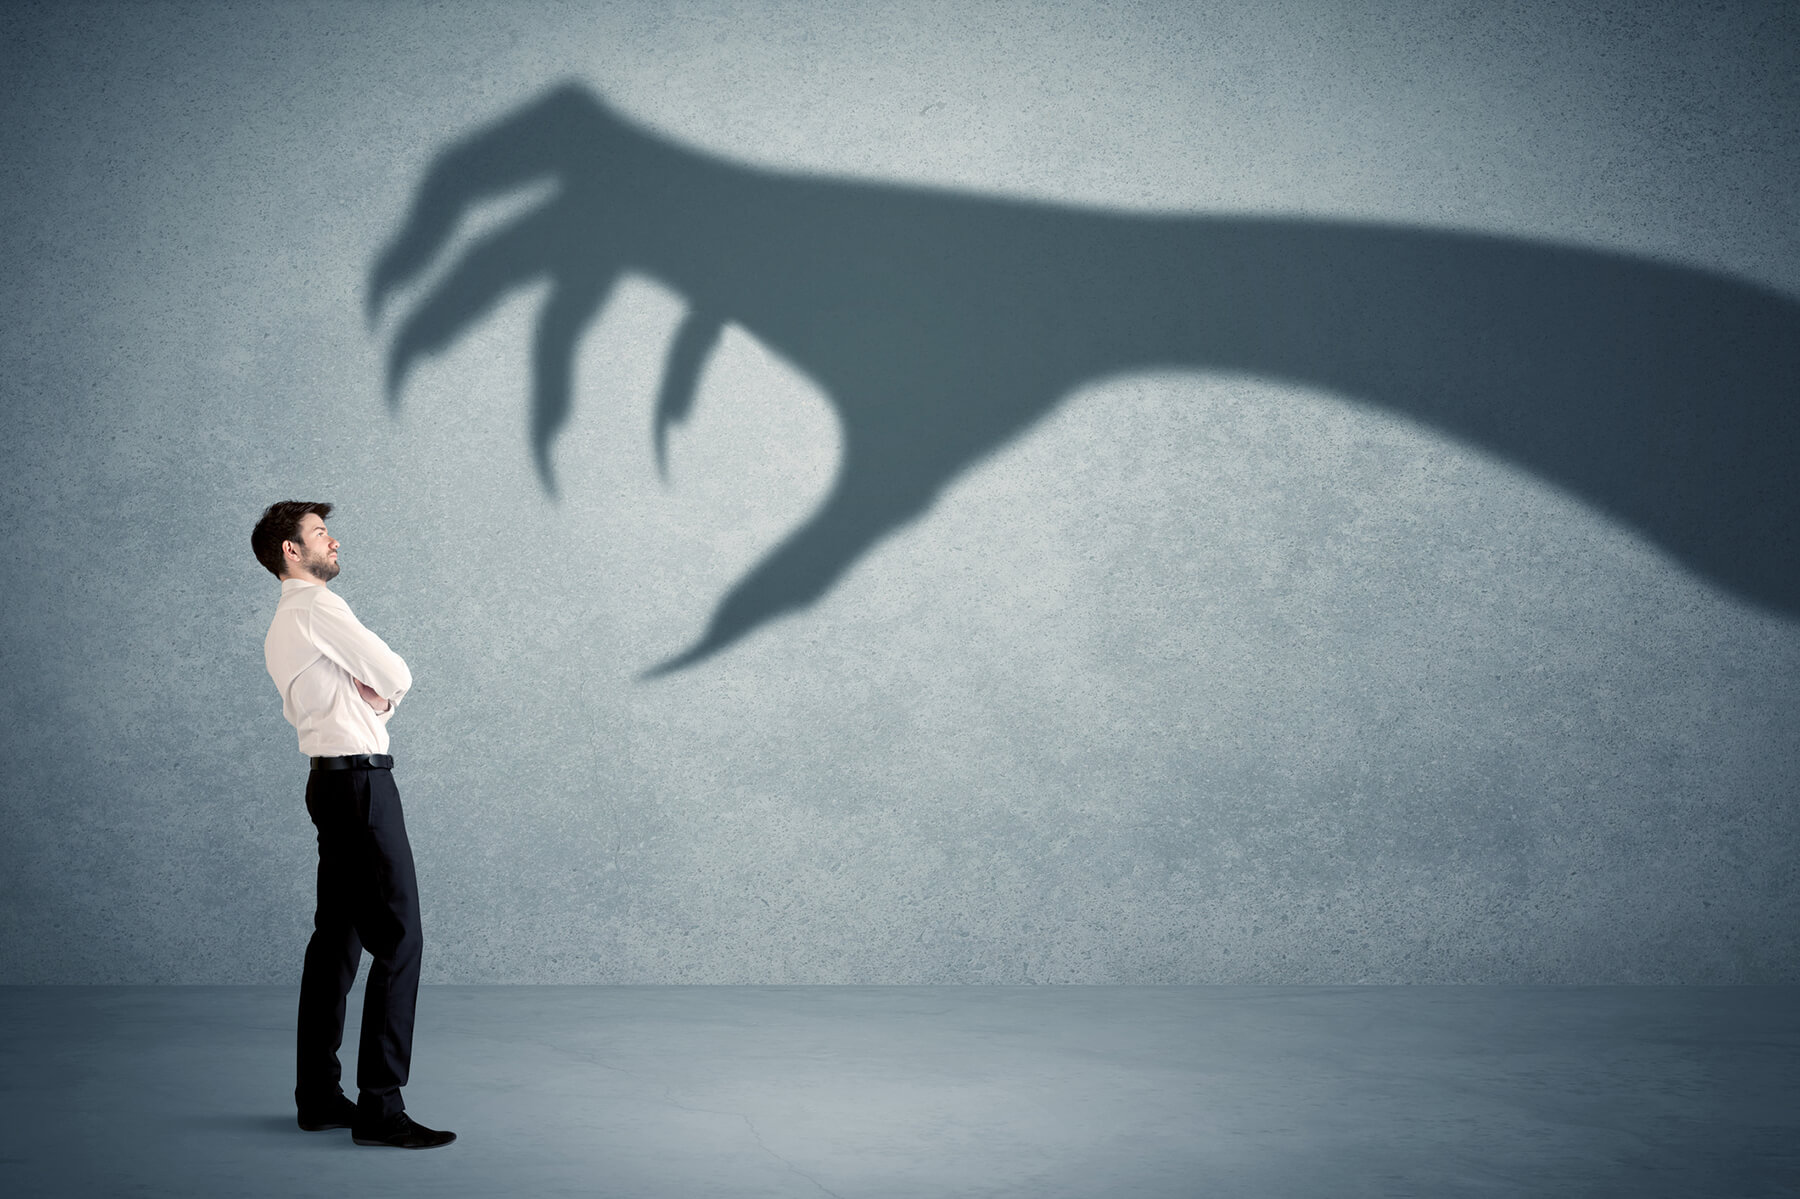 Businessman stands facing the shadow of a monster hand